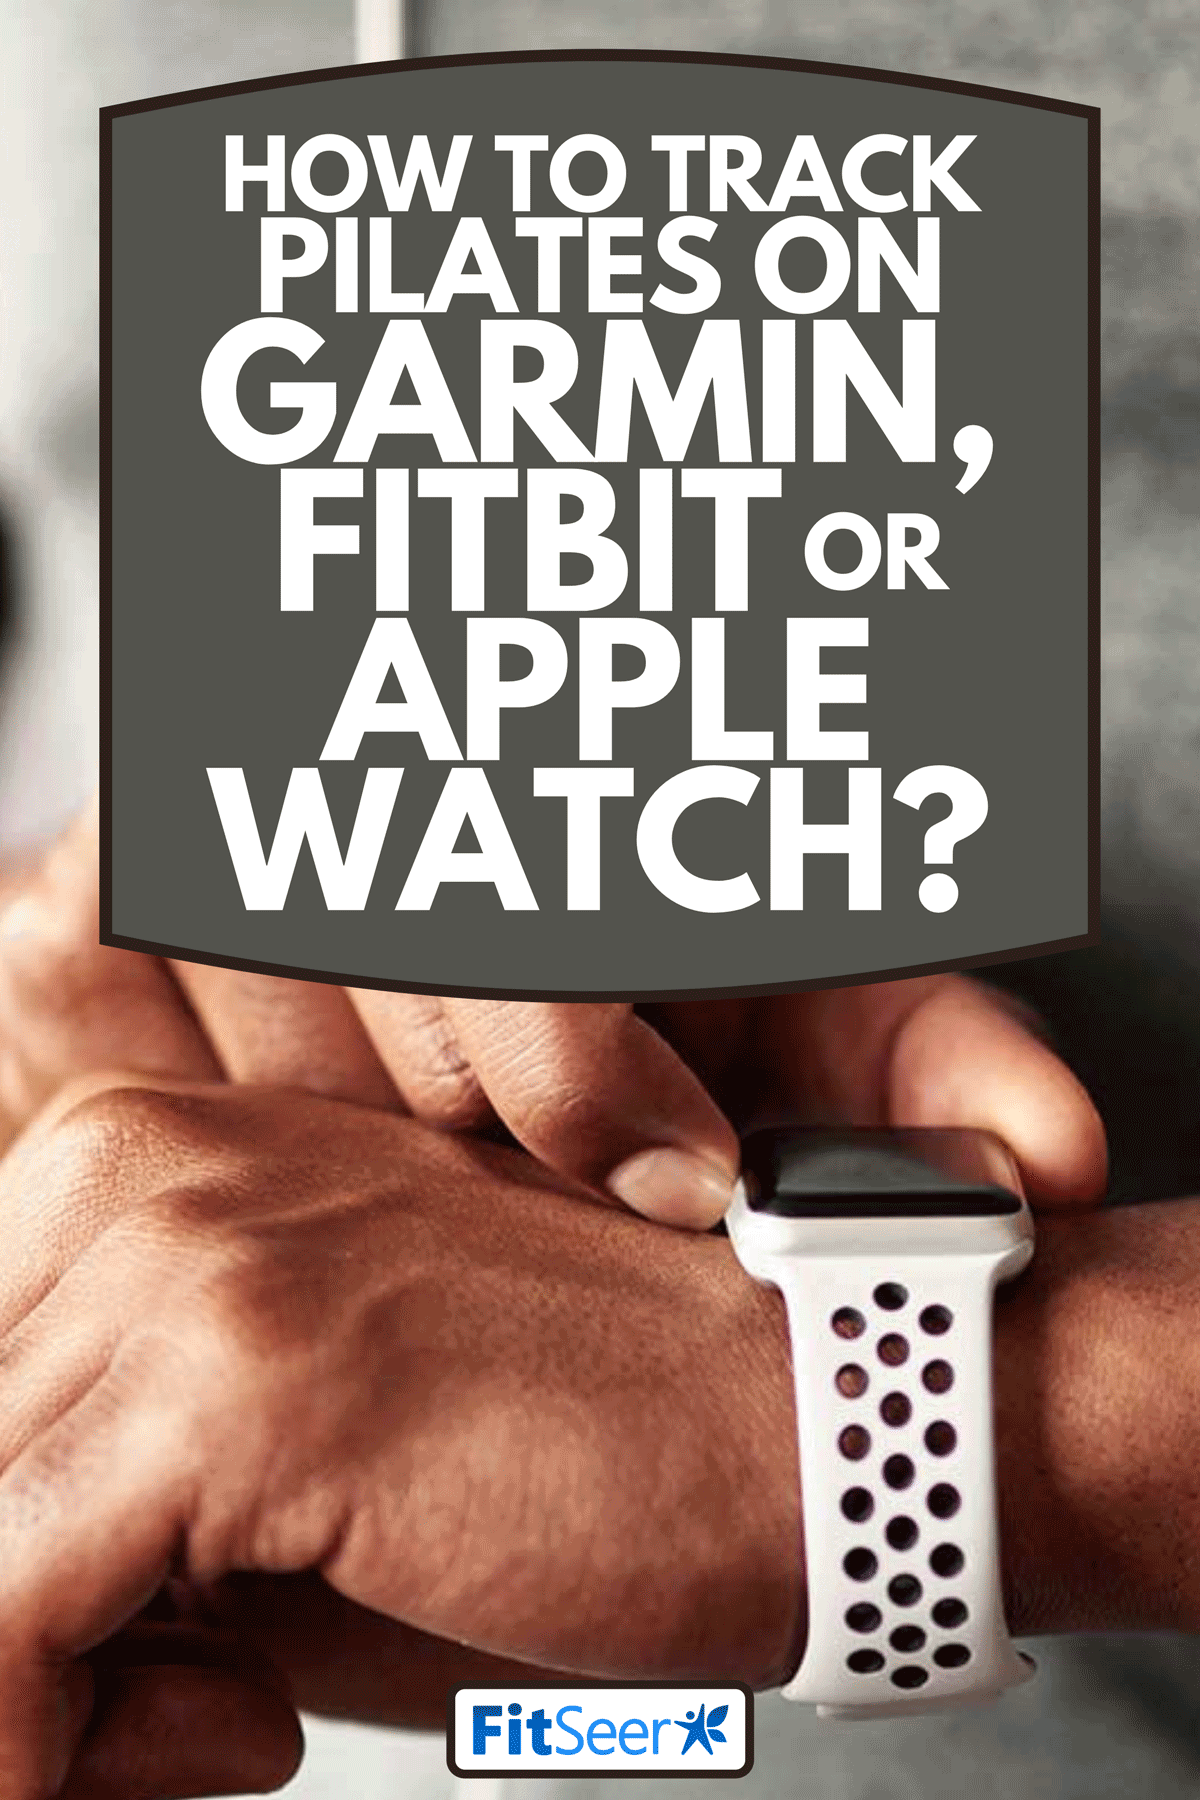 A man using his wristwatch for tracking activity, How To Track Pilates On Garmin, Fitbit Or Apple Watch?